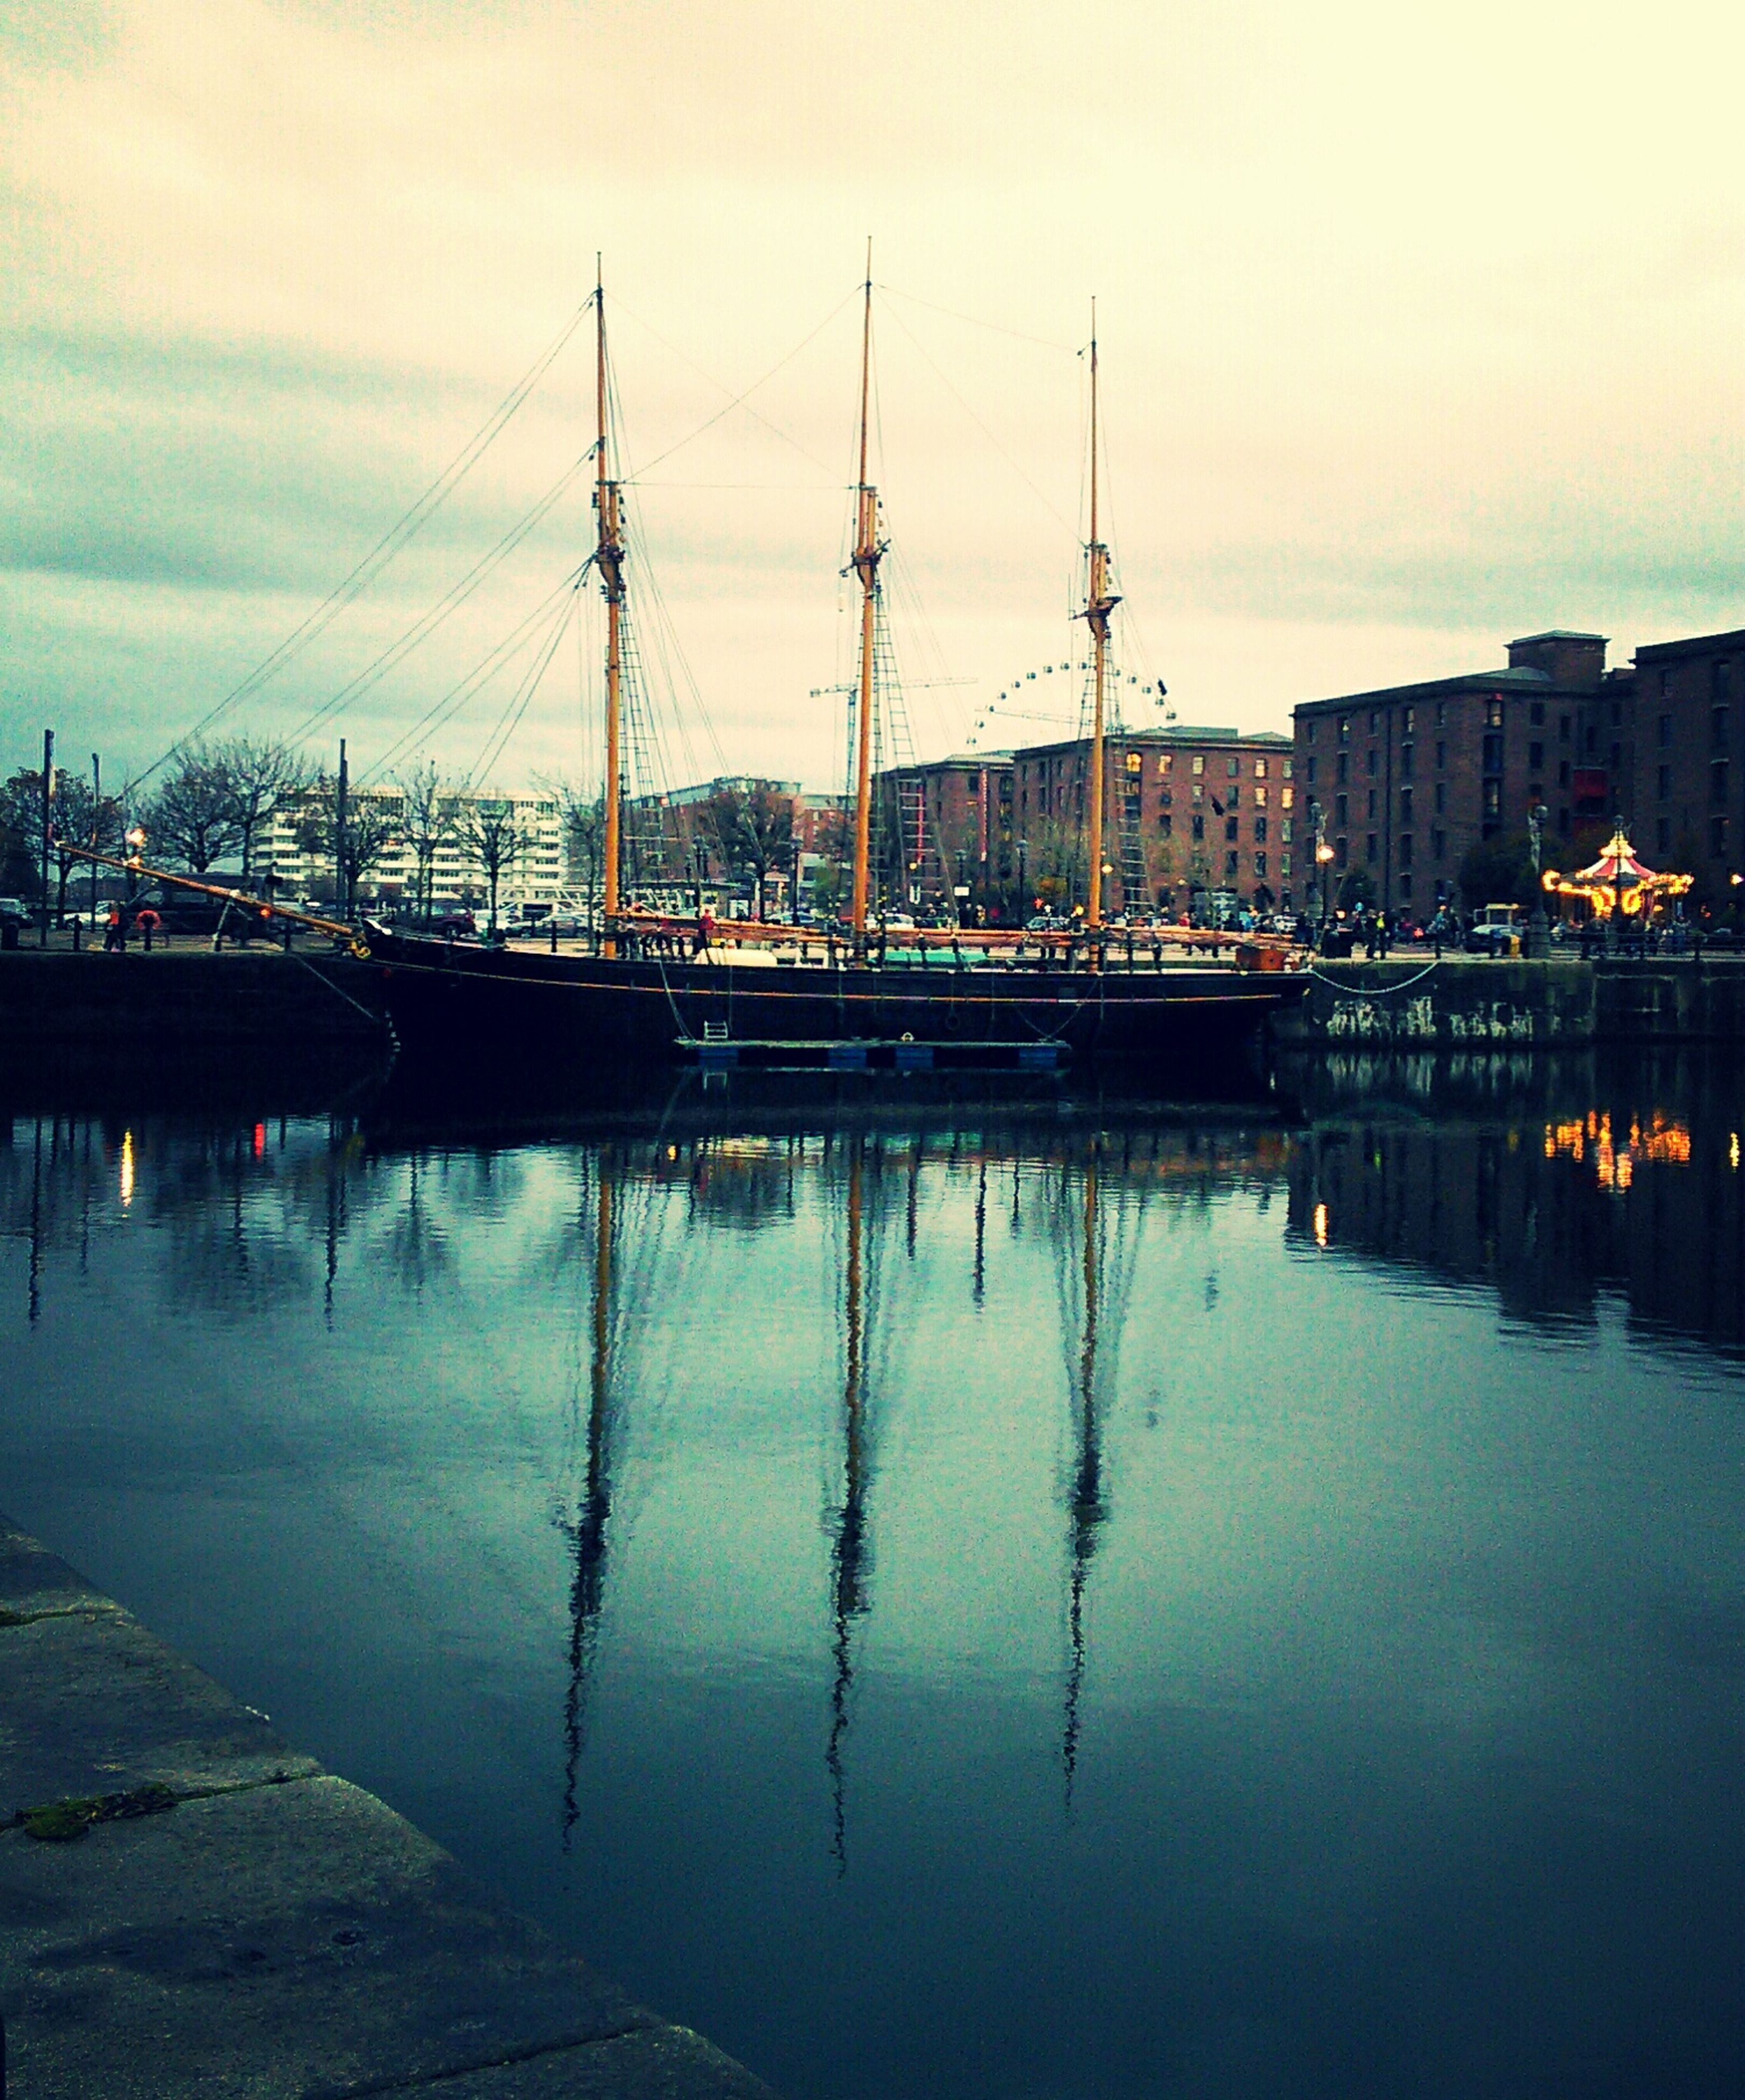 water, reflection, waterfront, nautical vessel, transportation, harbor, sky, moored, built structure, mast, mode of transport, river, boat, architecture, lake, sailboat, building exterior, nature, dusk, outdoors